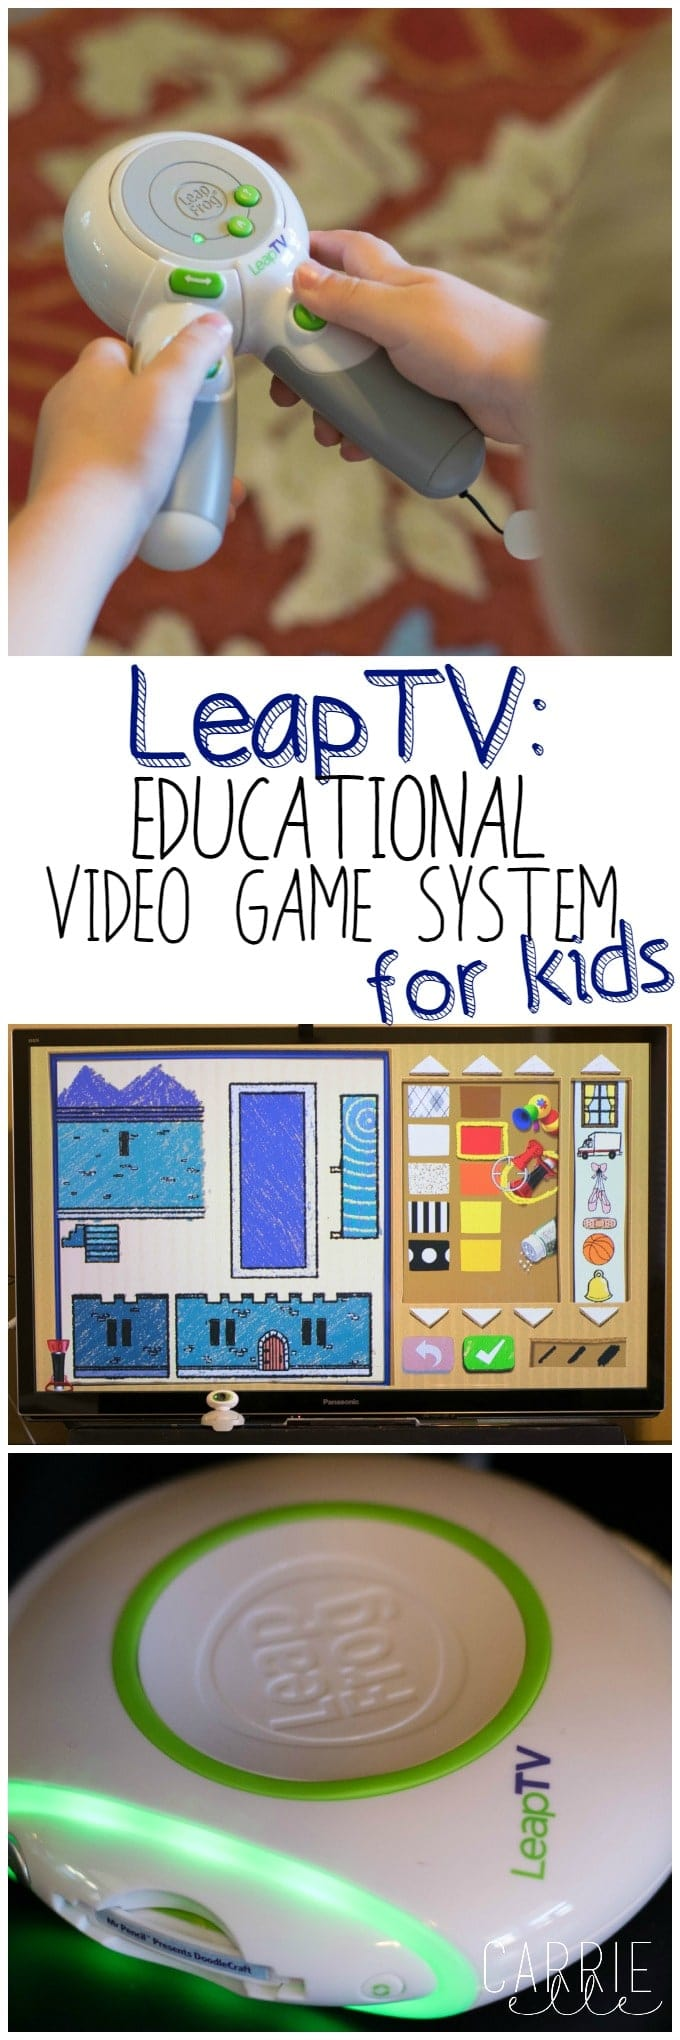 Video Game System for Kids